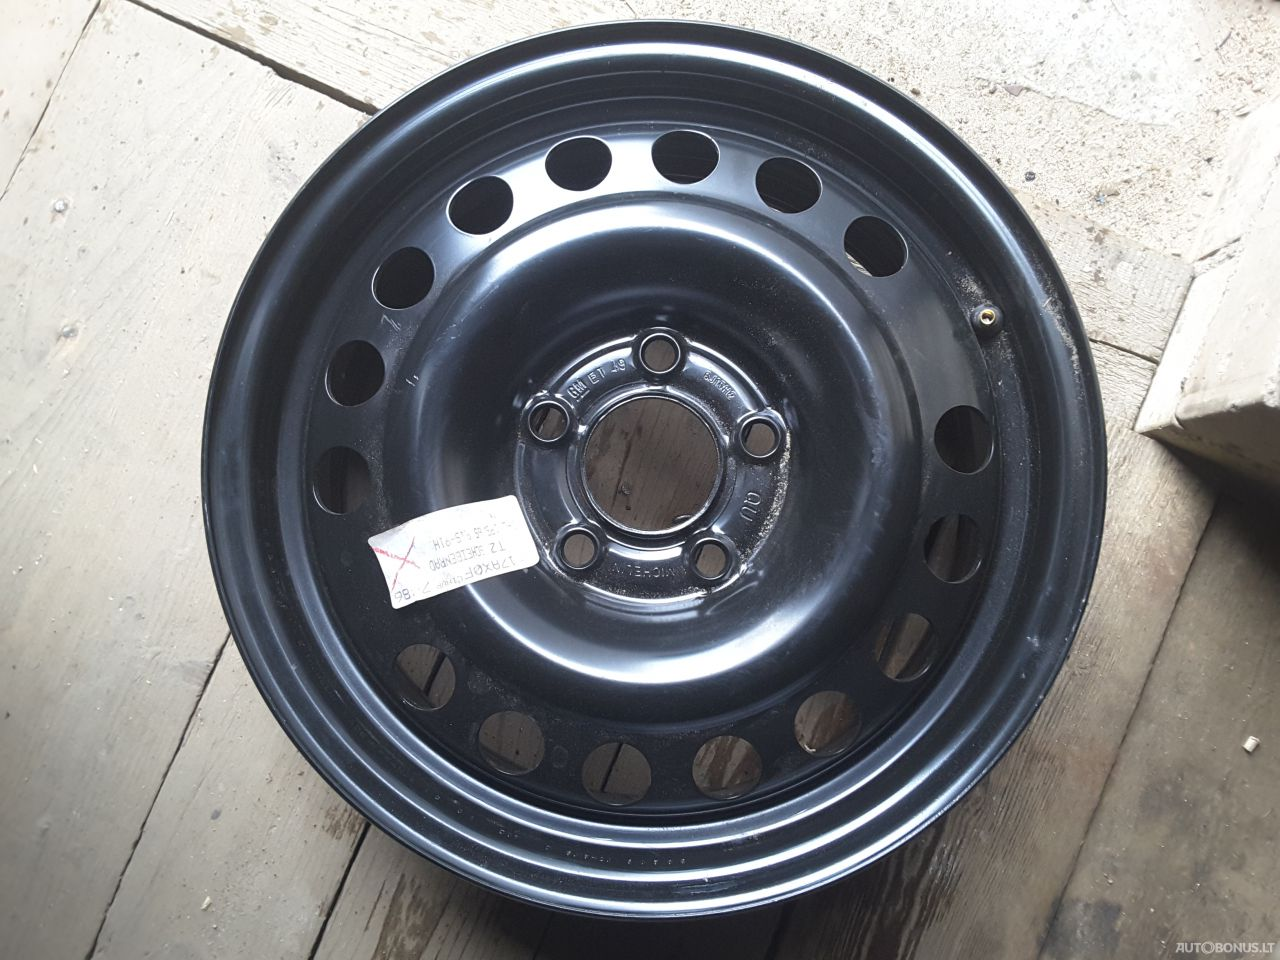 Opel steel stamped rims